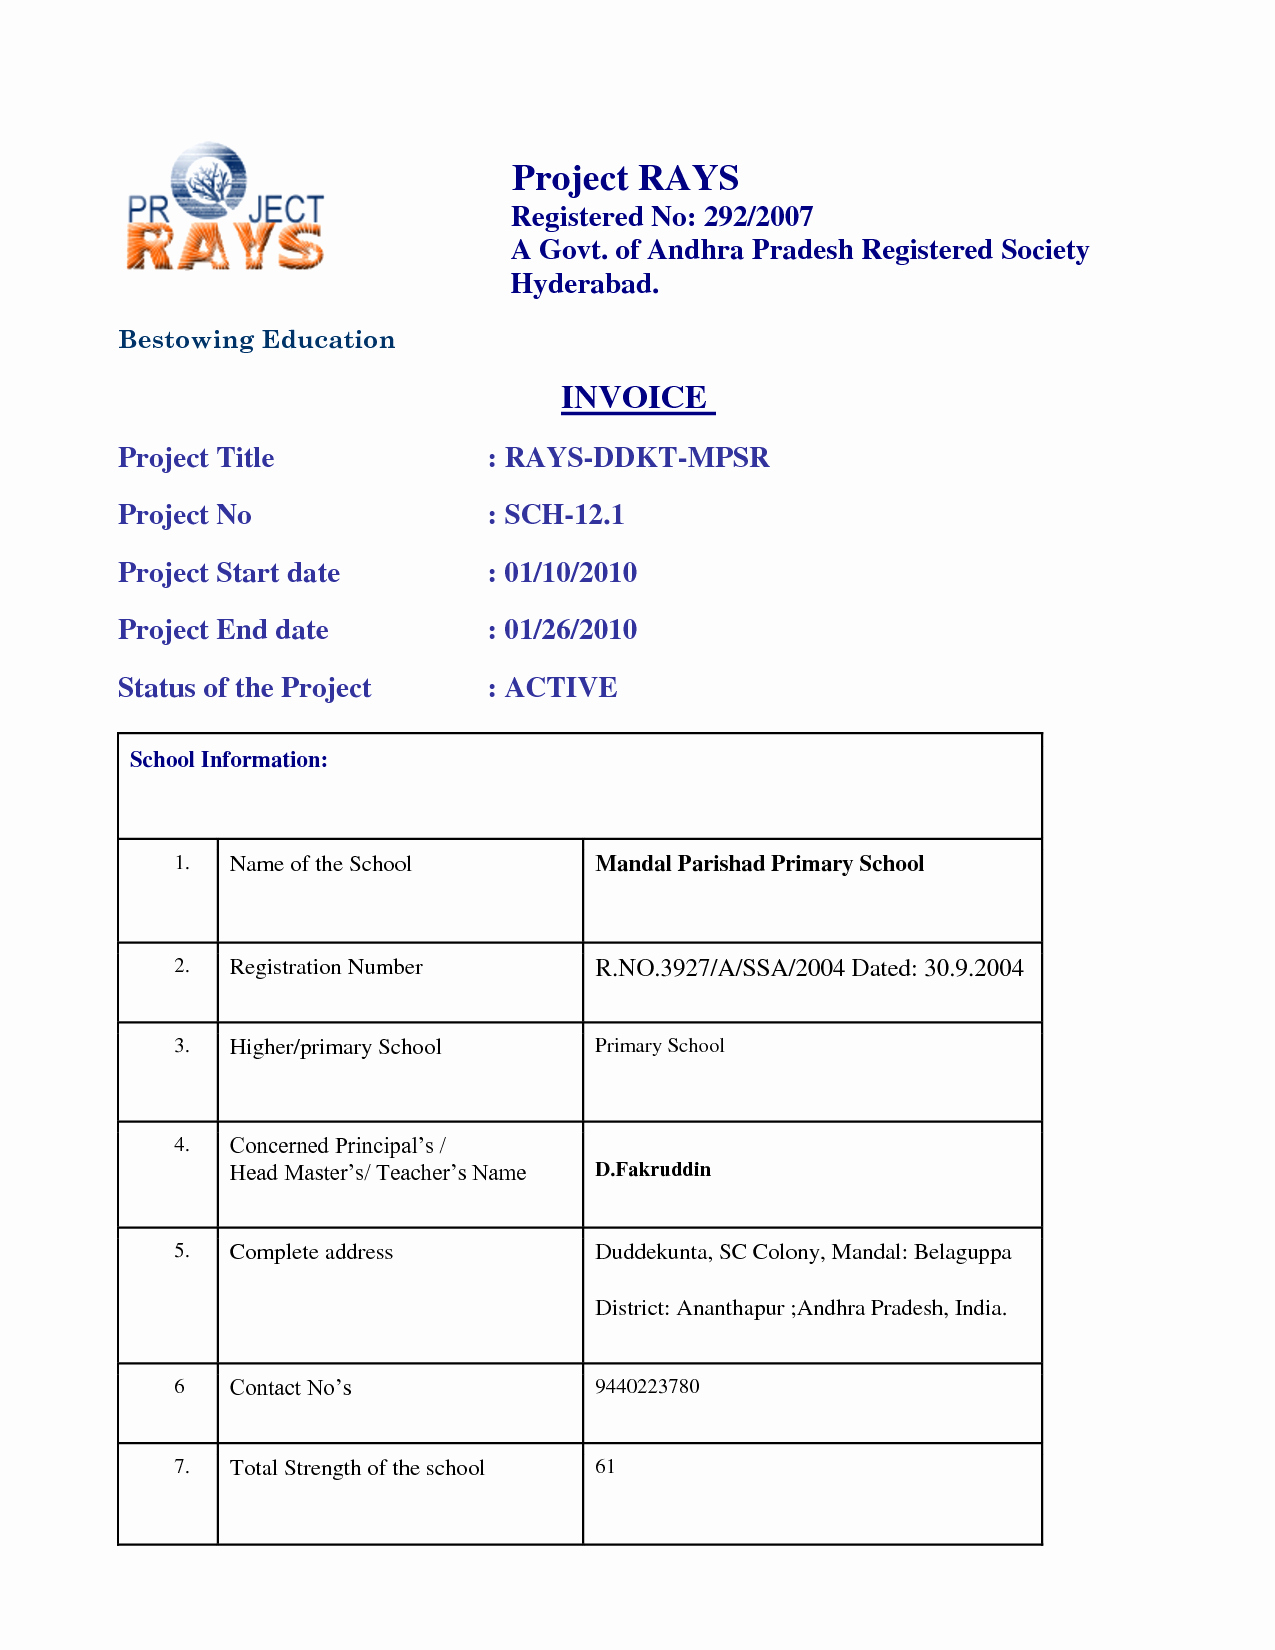 Sample Invoice For Painting Job – Amandaeca With Painter Invoice Template